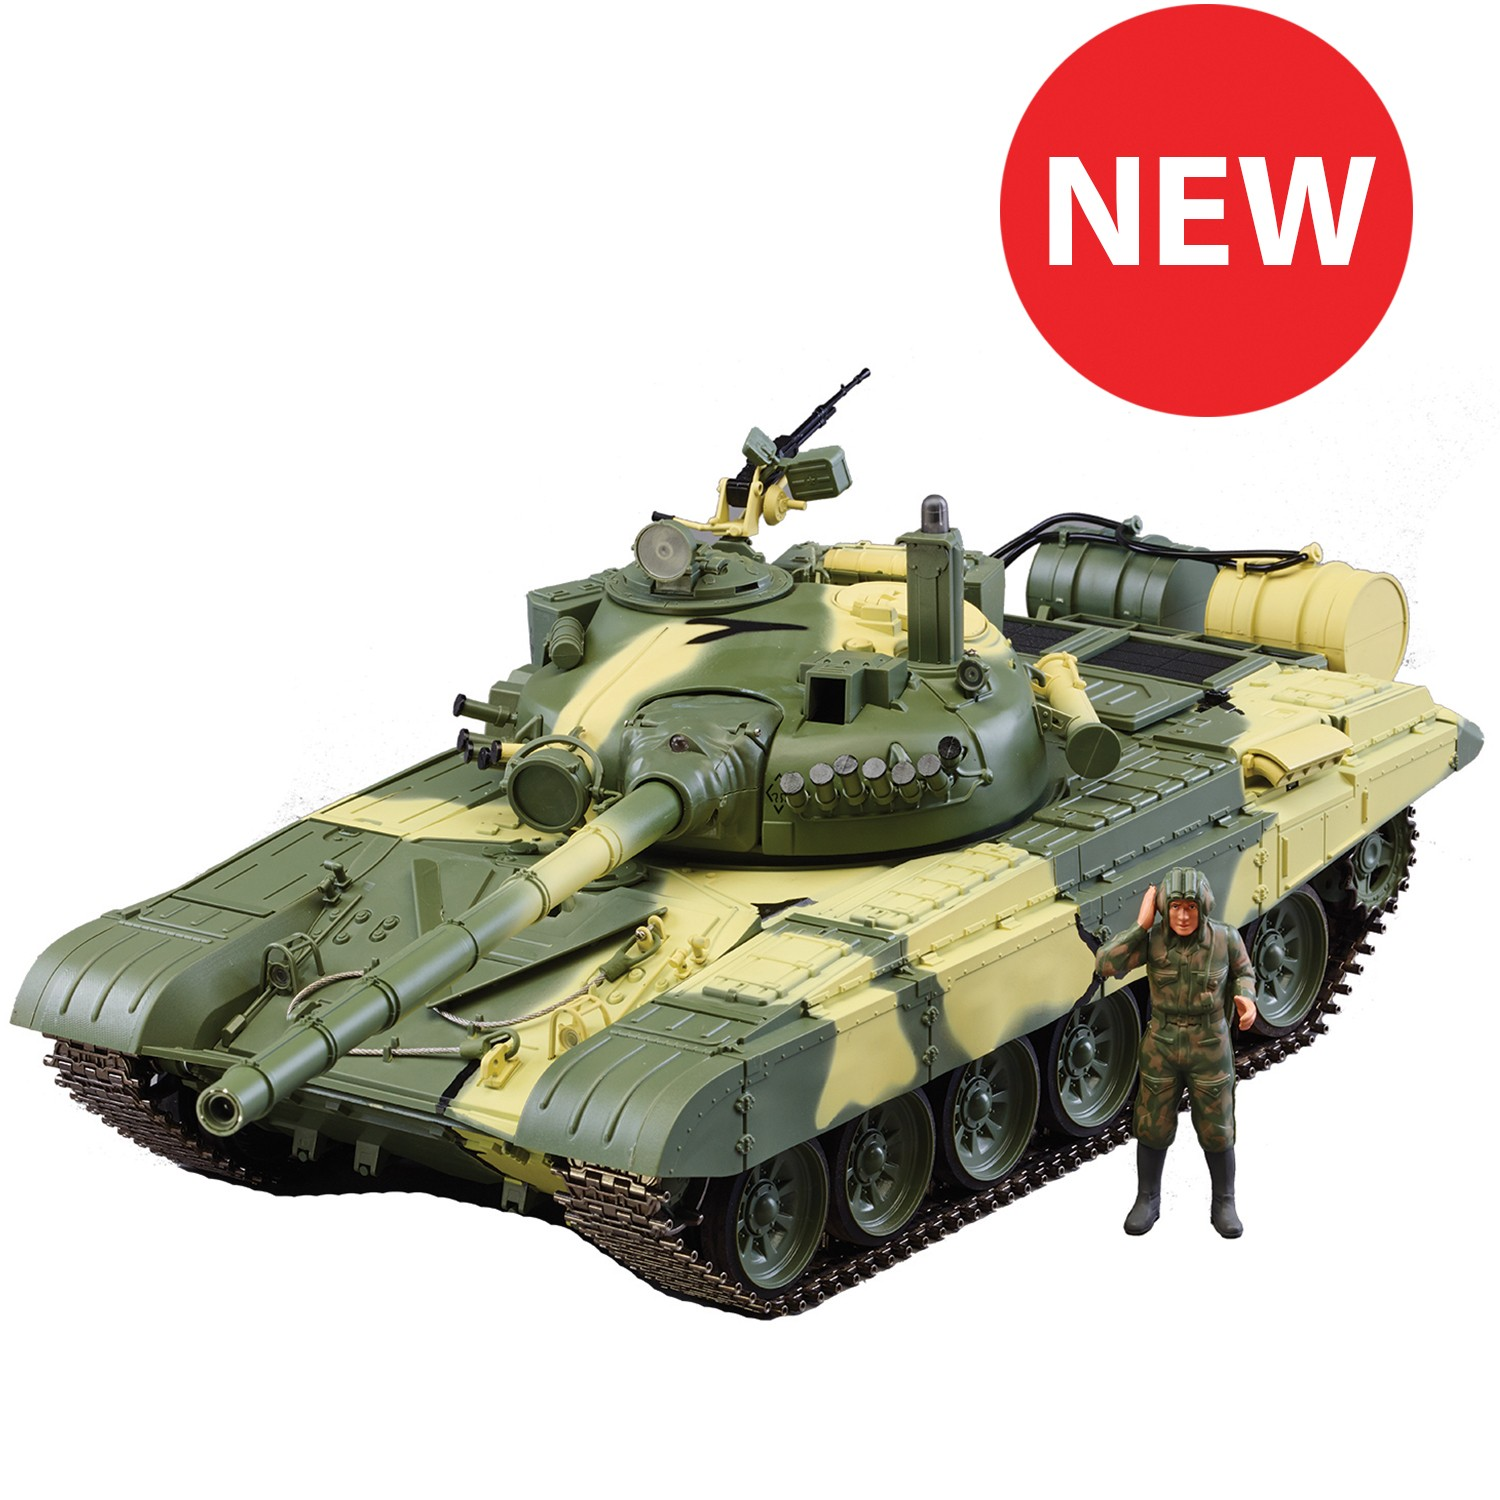 radio controlled planes videos with Build The T72 Russian Tank on Fatshark Attitude V2 Fpv Video Goggles Inc Camera And Tx 1320 furthermore Watch further 2 moreover hobbyandmodel co also 4304v3.